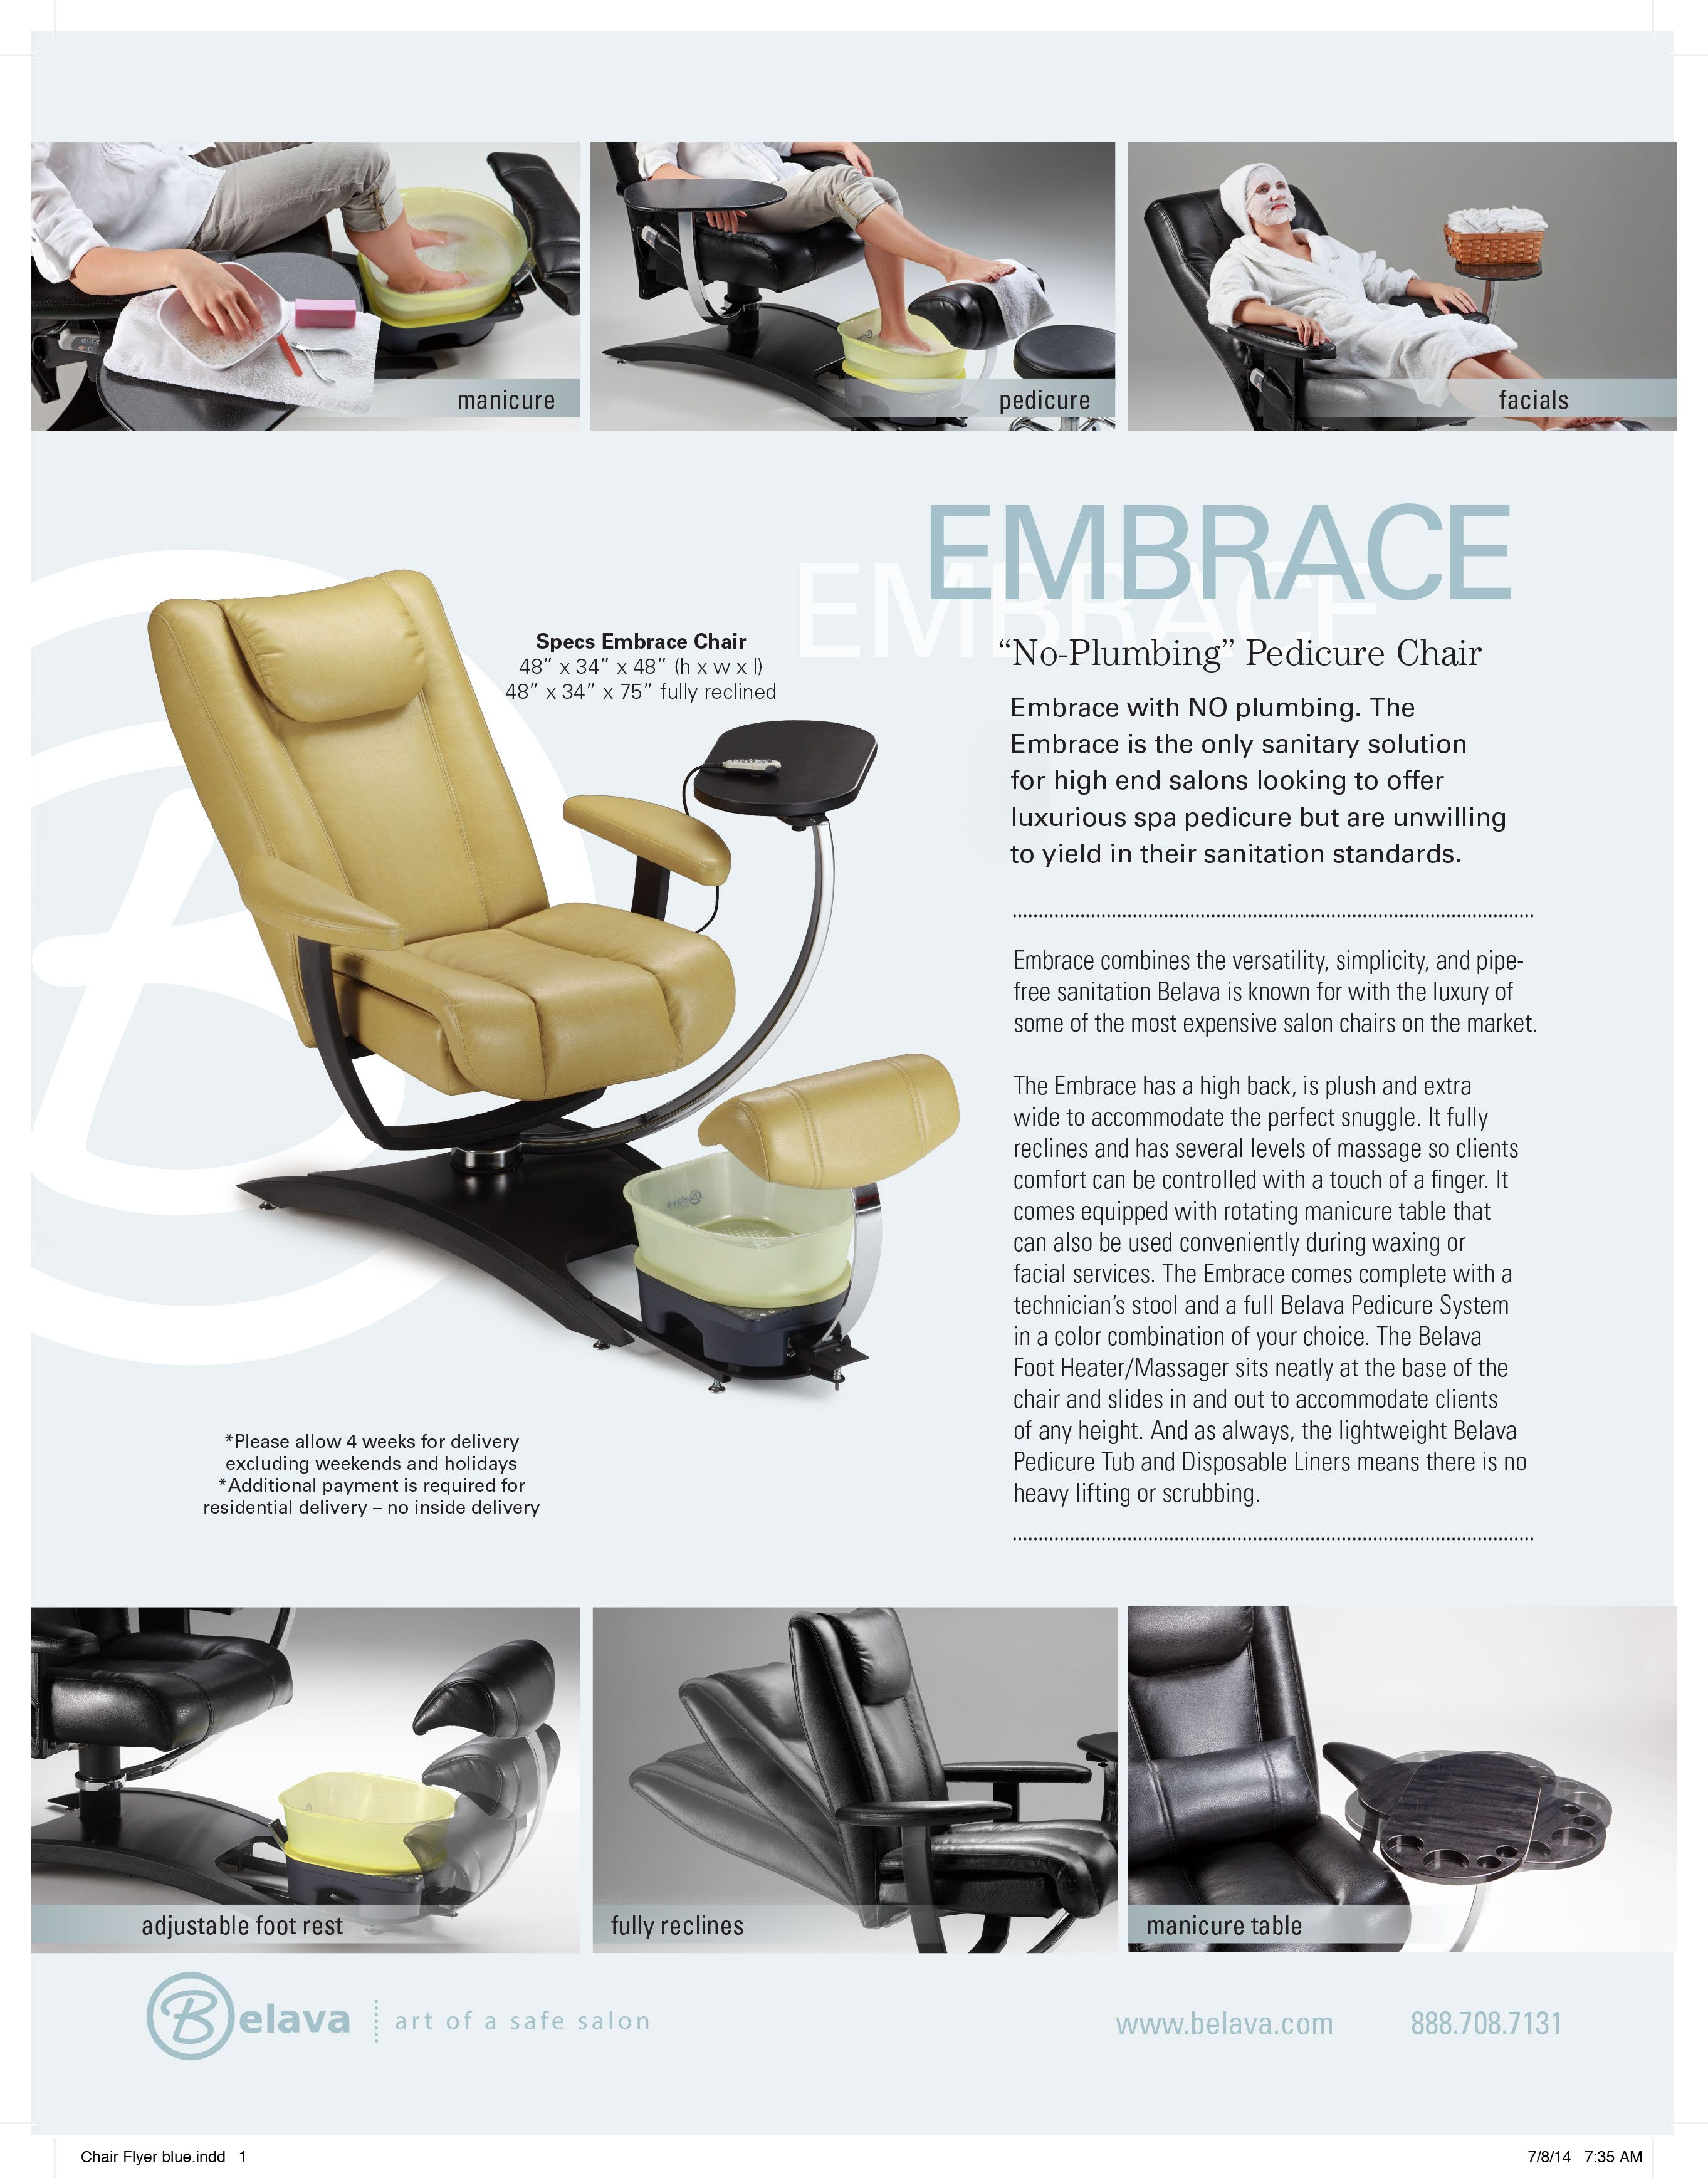 Belava Pedicure Chair Belava Embrace Chair Advertisements Mobile Nail